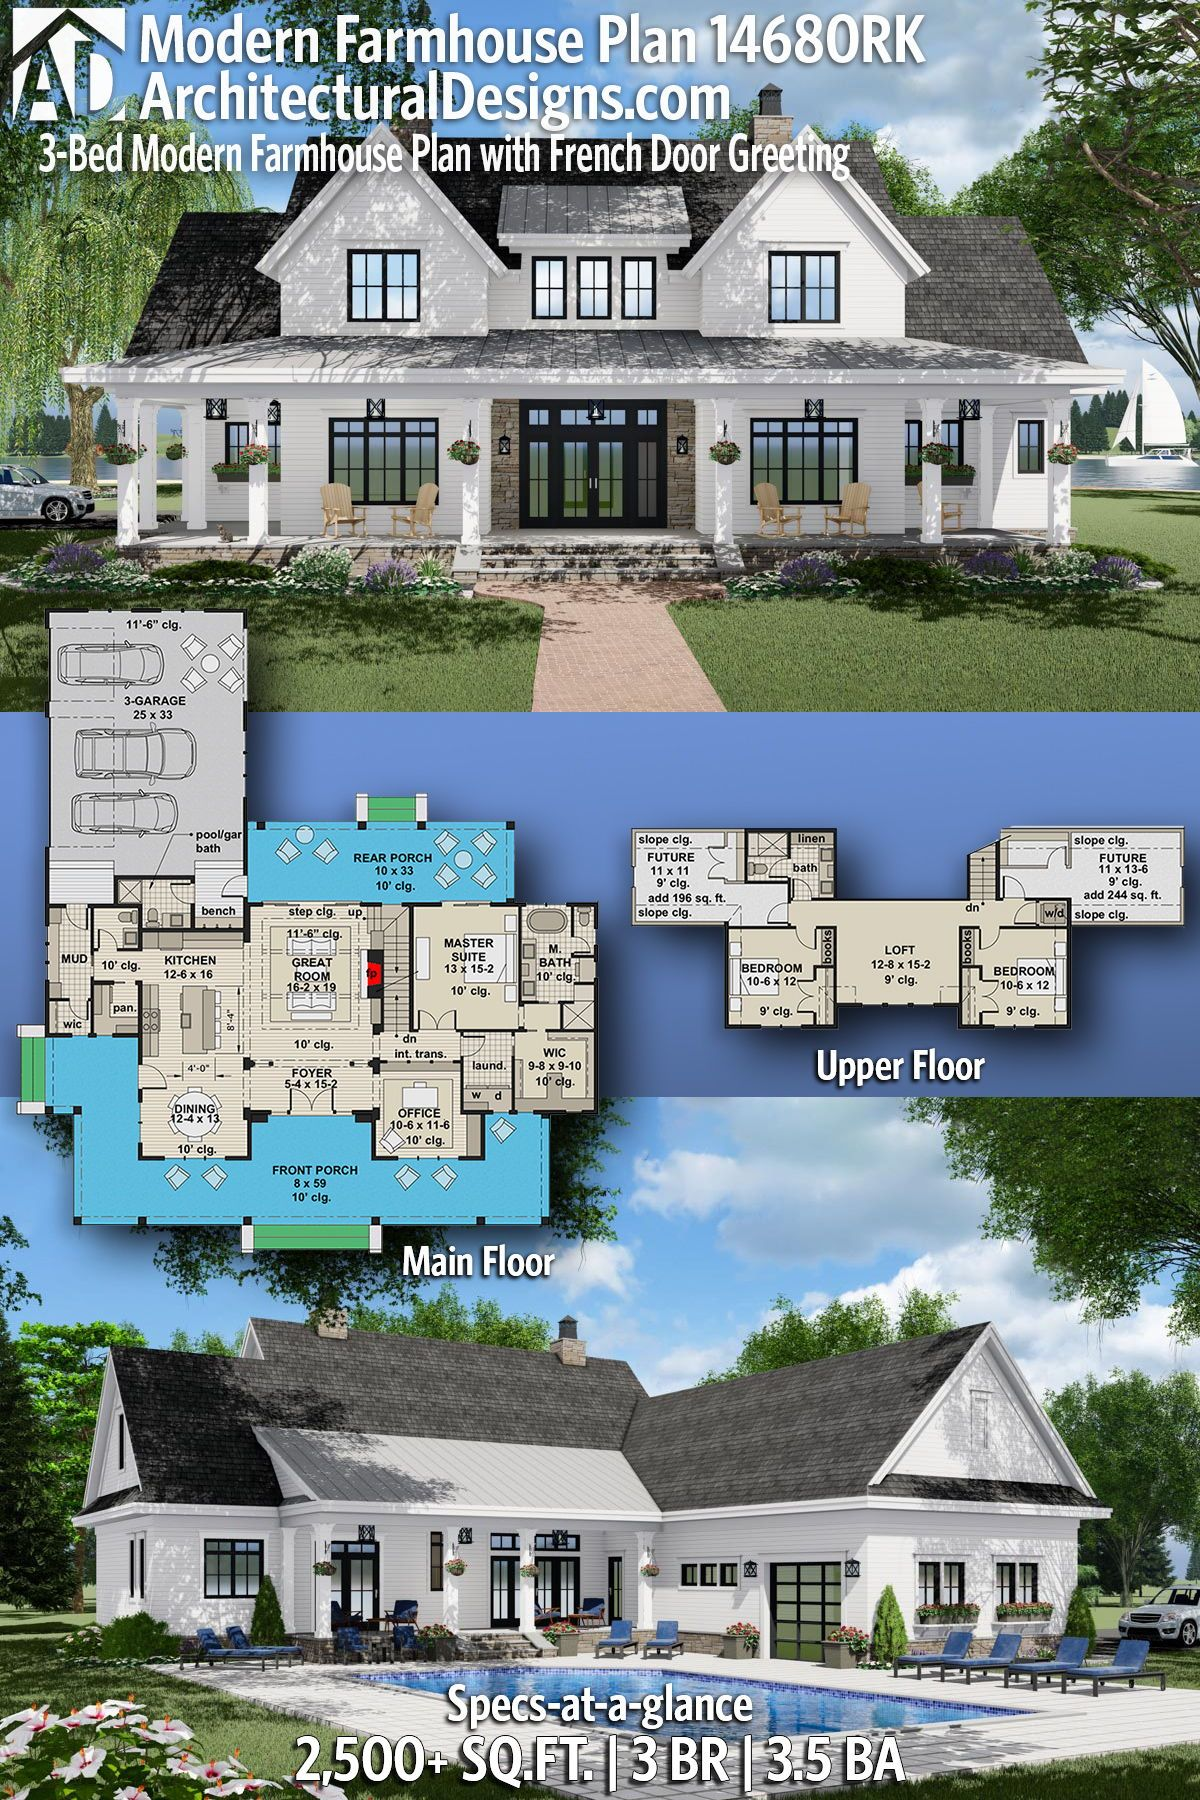 Plan 14680RK: 3-Bed Modern Farmhouse Plan with French Door Greeting